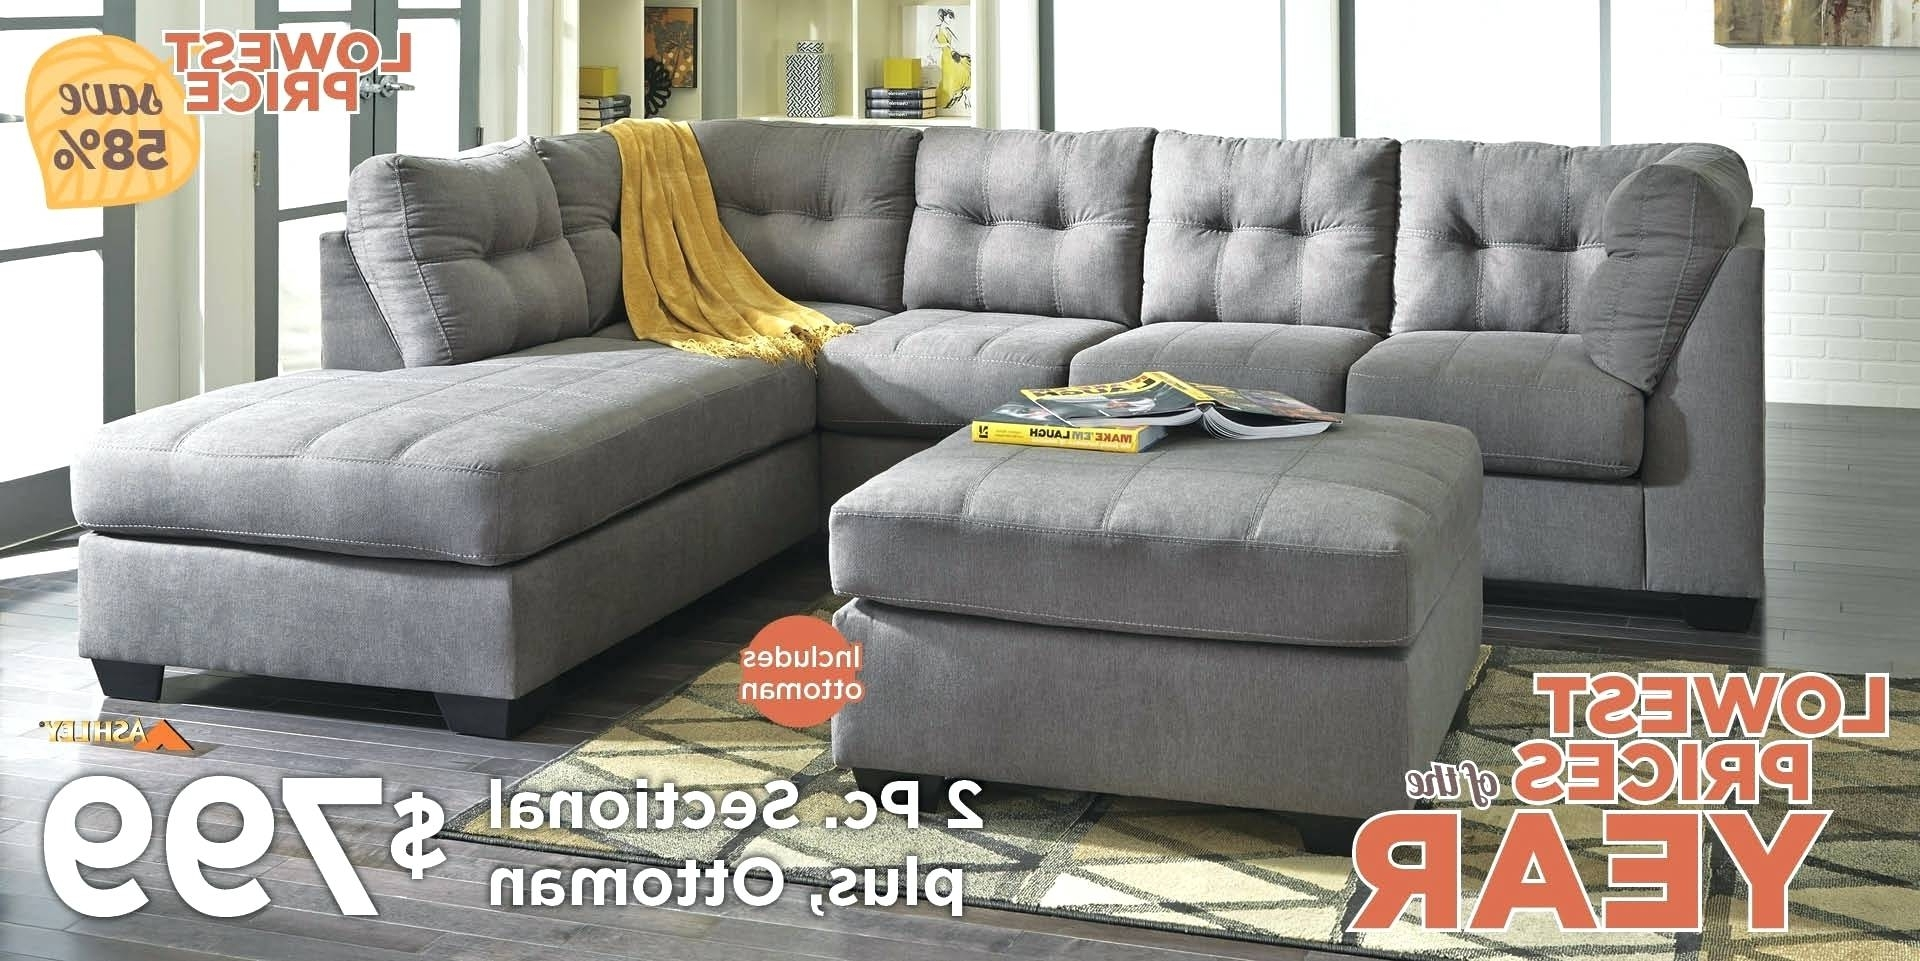 Well Known Sam Levitz Sectional Sofas In Sam Levitz Furniture Tucson Az Two Piece Sectional With Full (View 2 of 15)